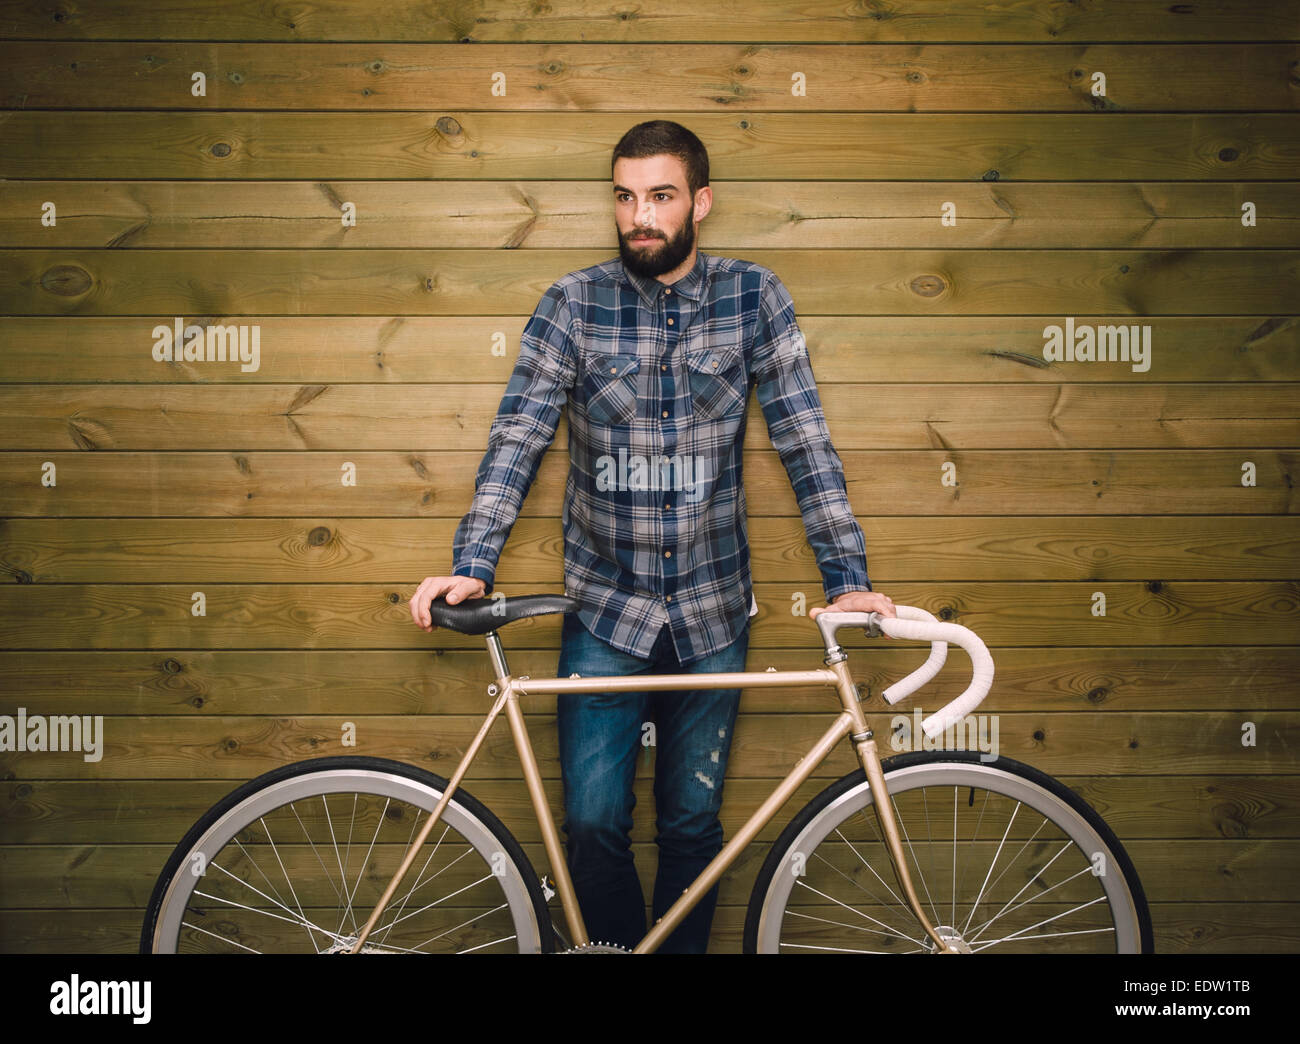 Hipster man with his fixie bike on a wooden background - Stock Image